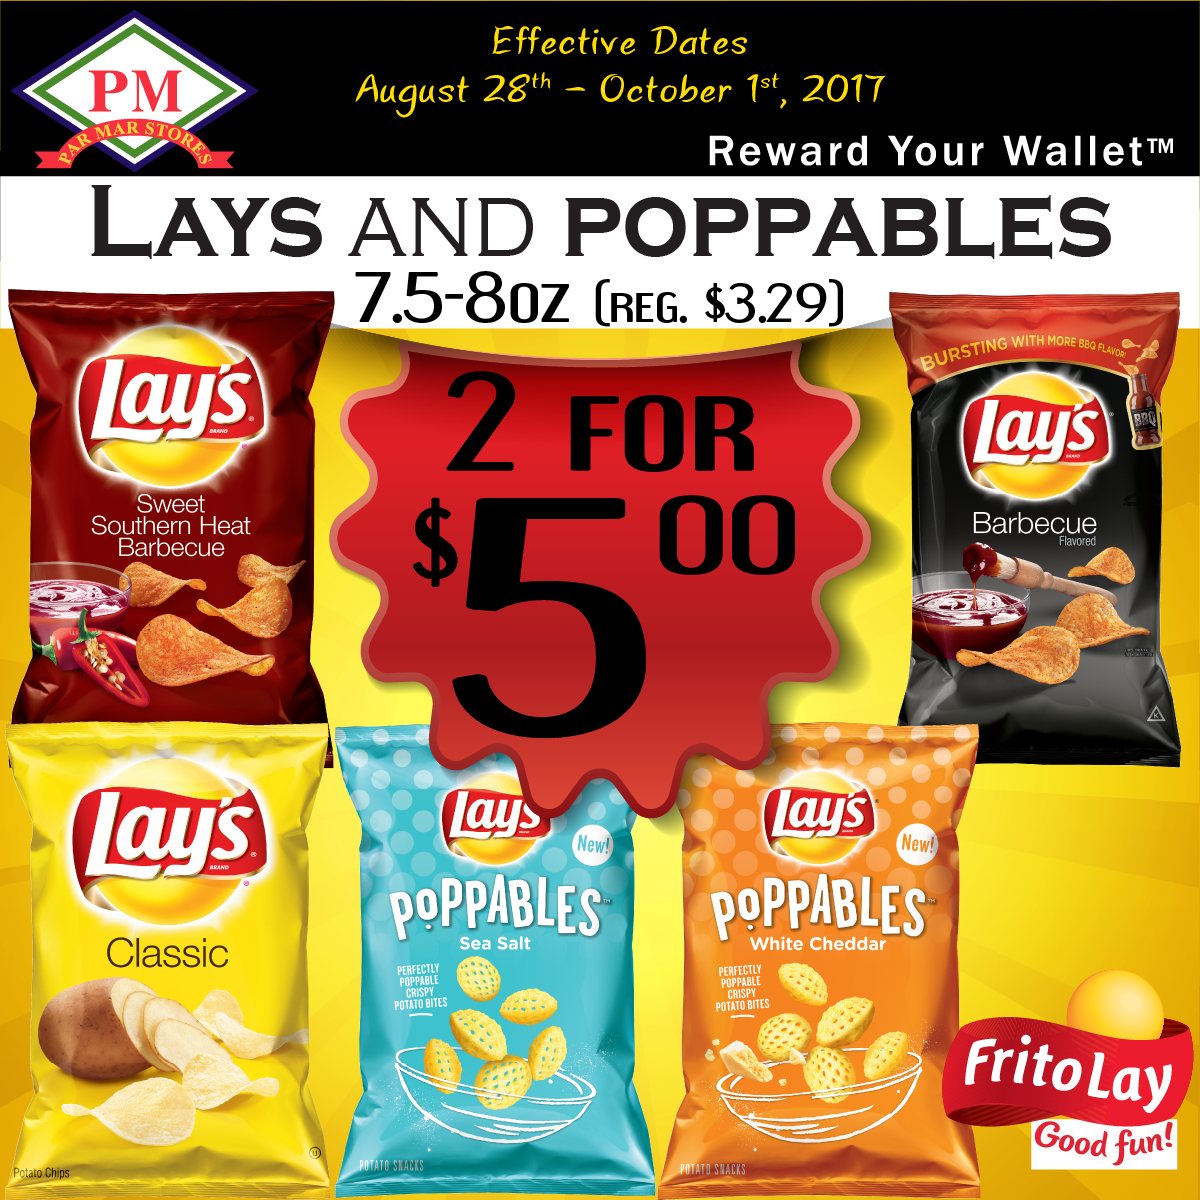 LaysPoppables